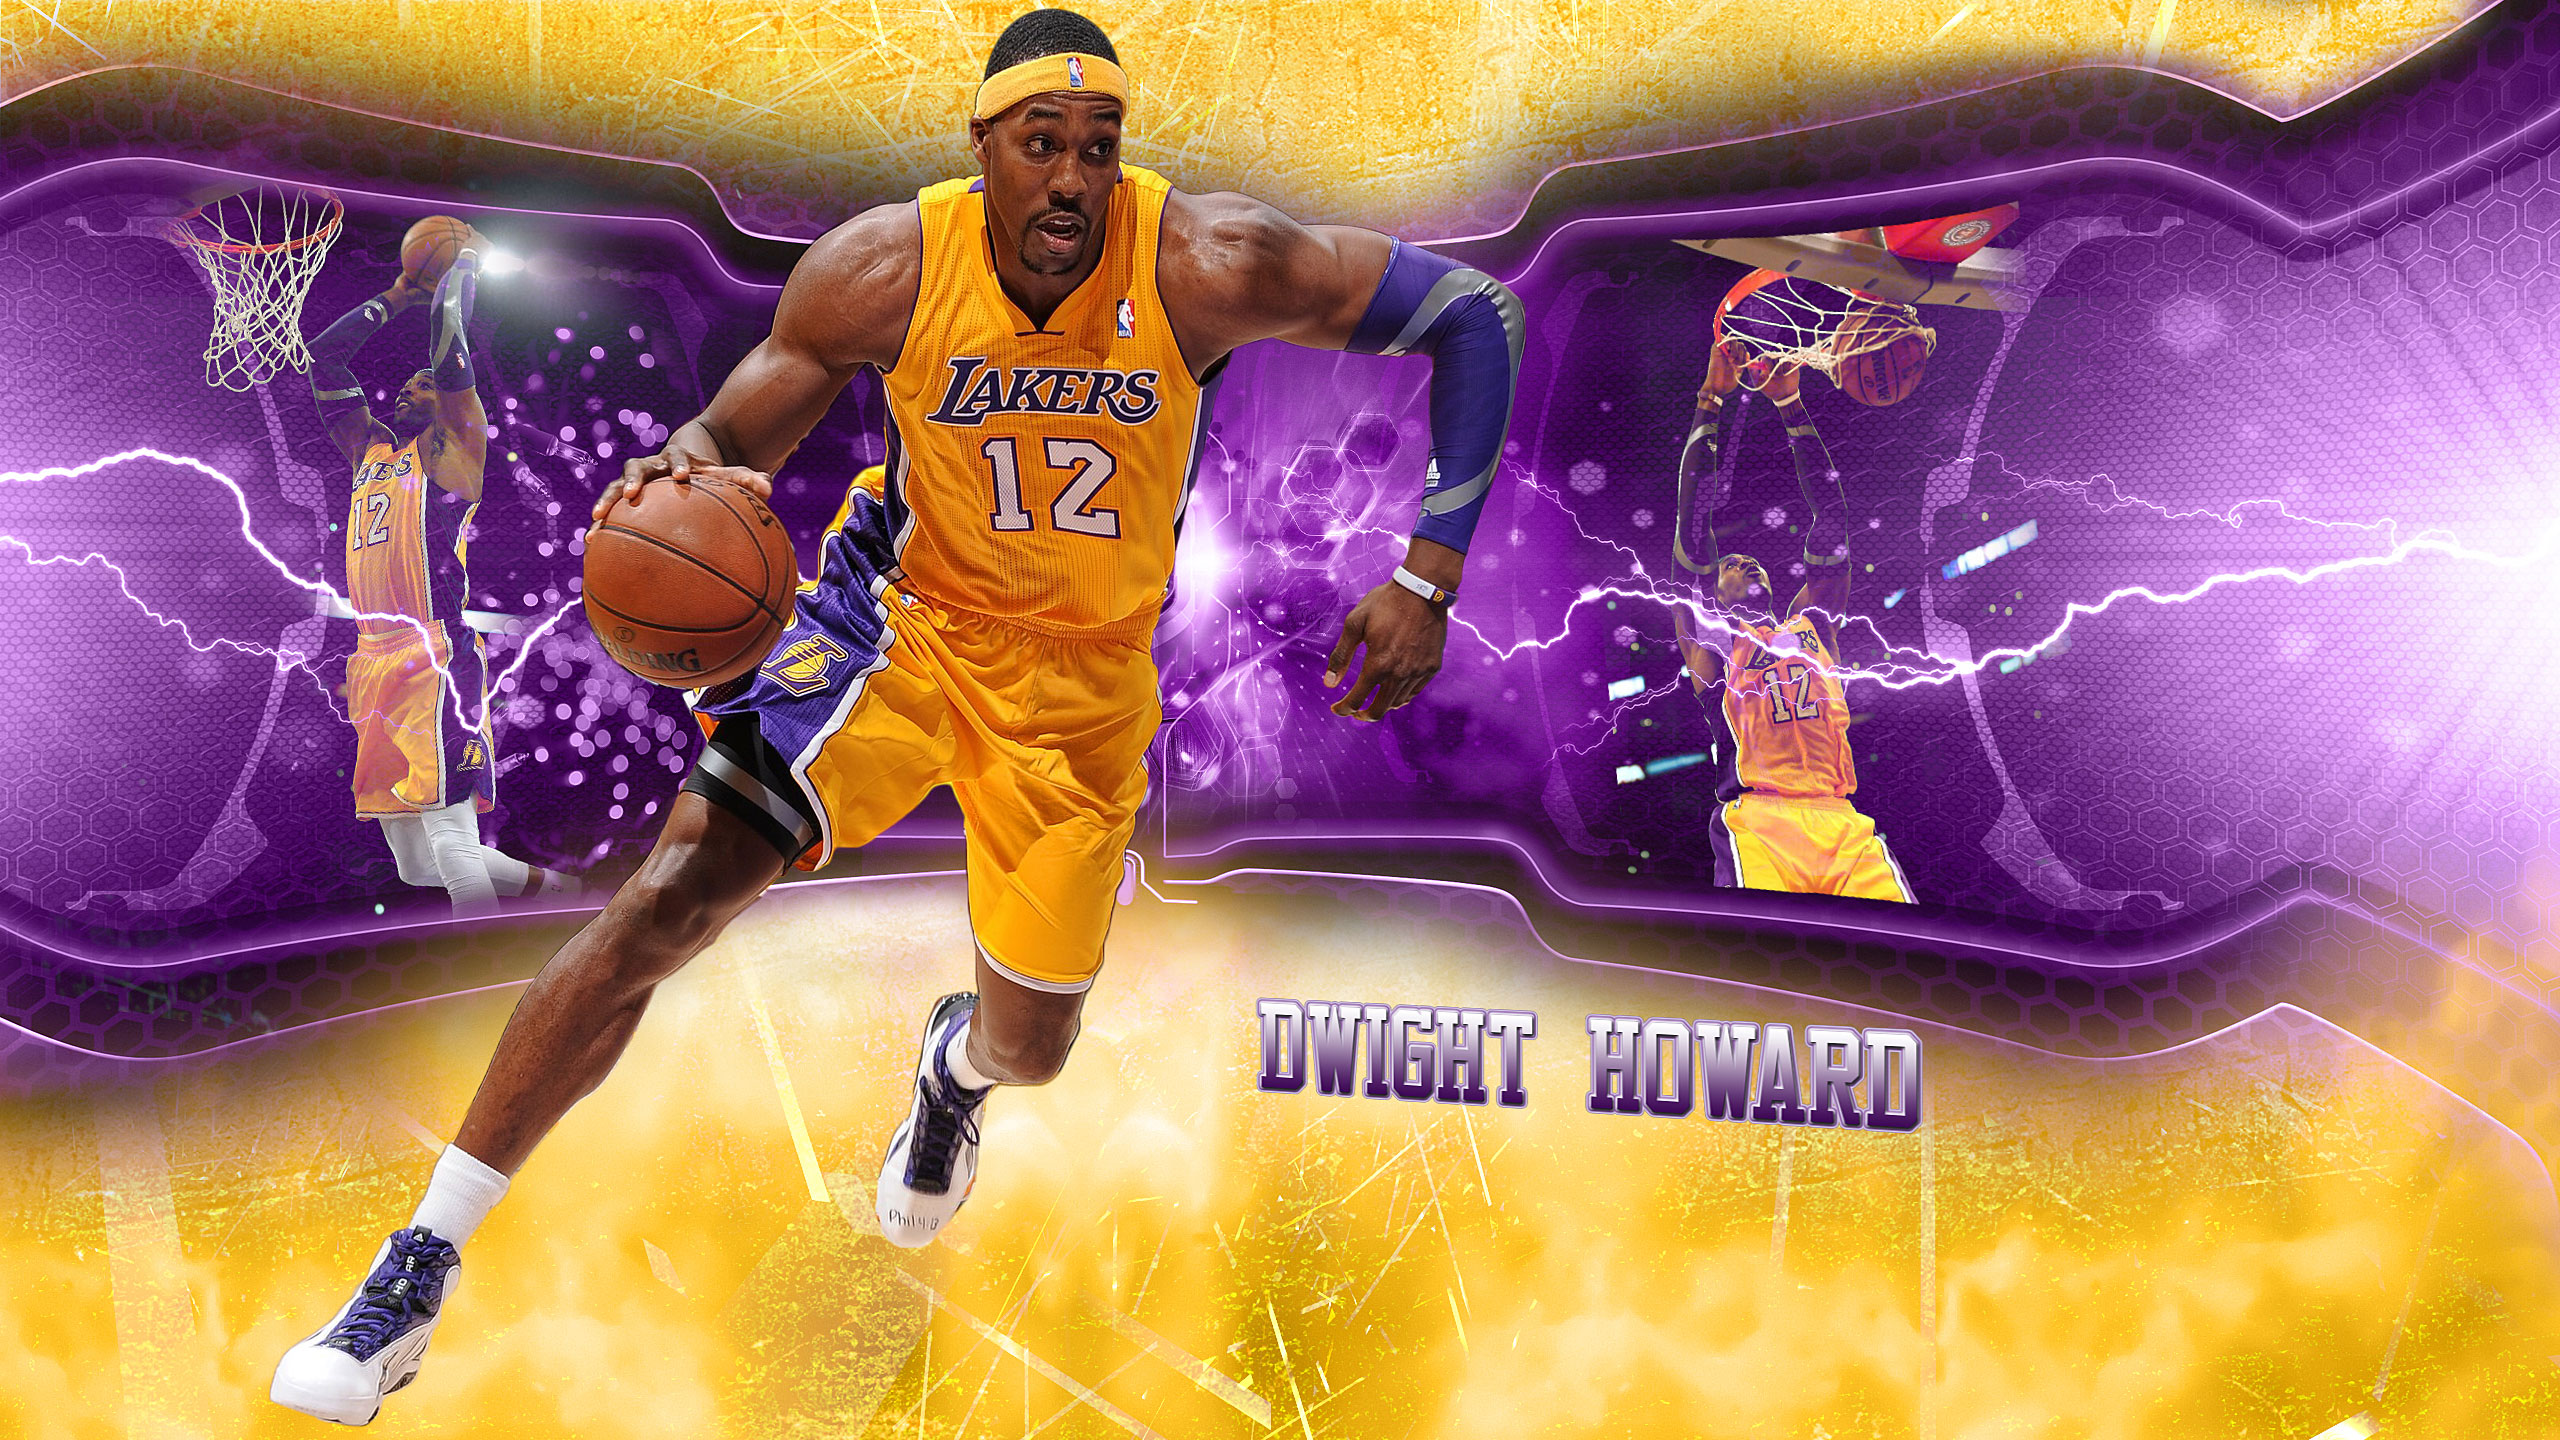 Lakers Wallpaper Photo  Wickedsa lakers desktop wallpaper 2560x1440